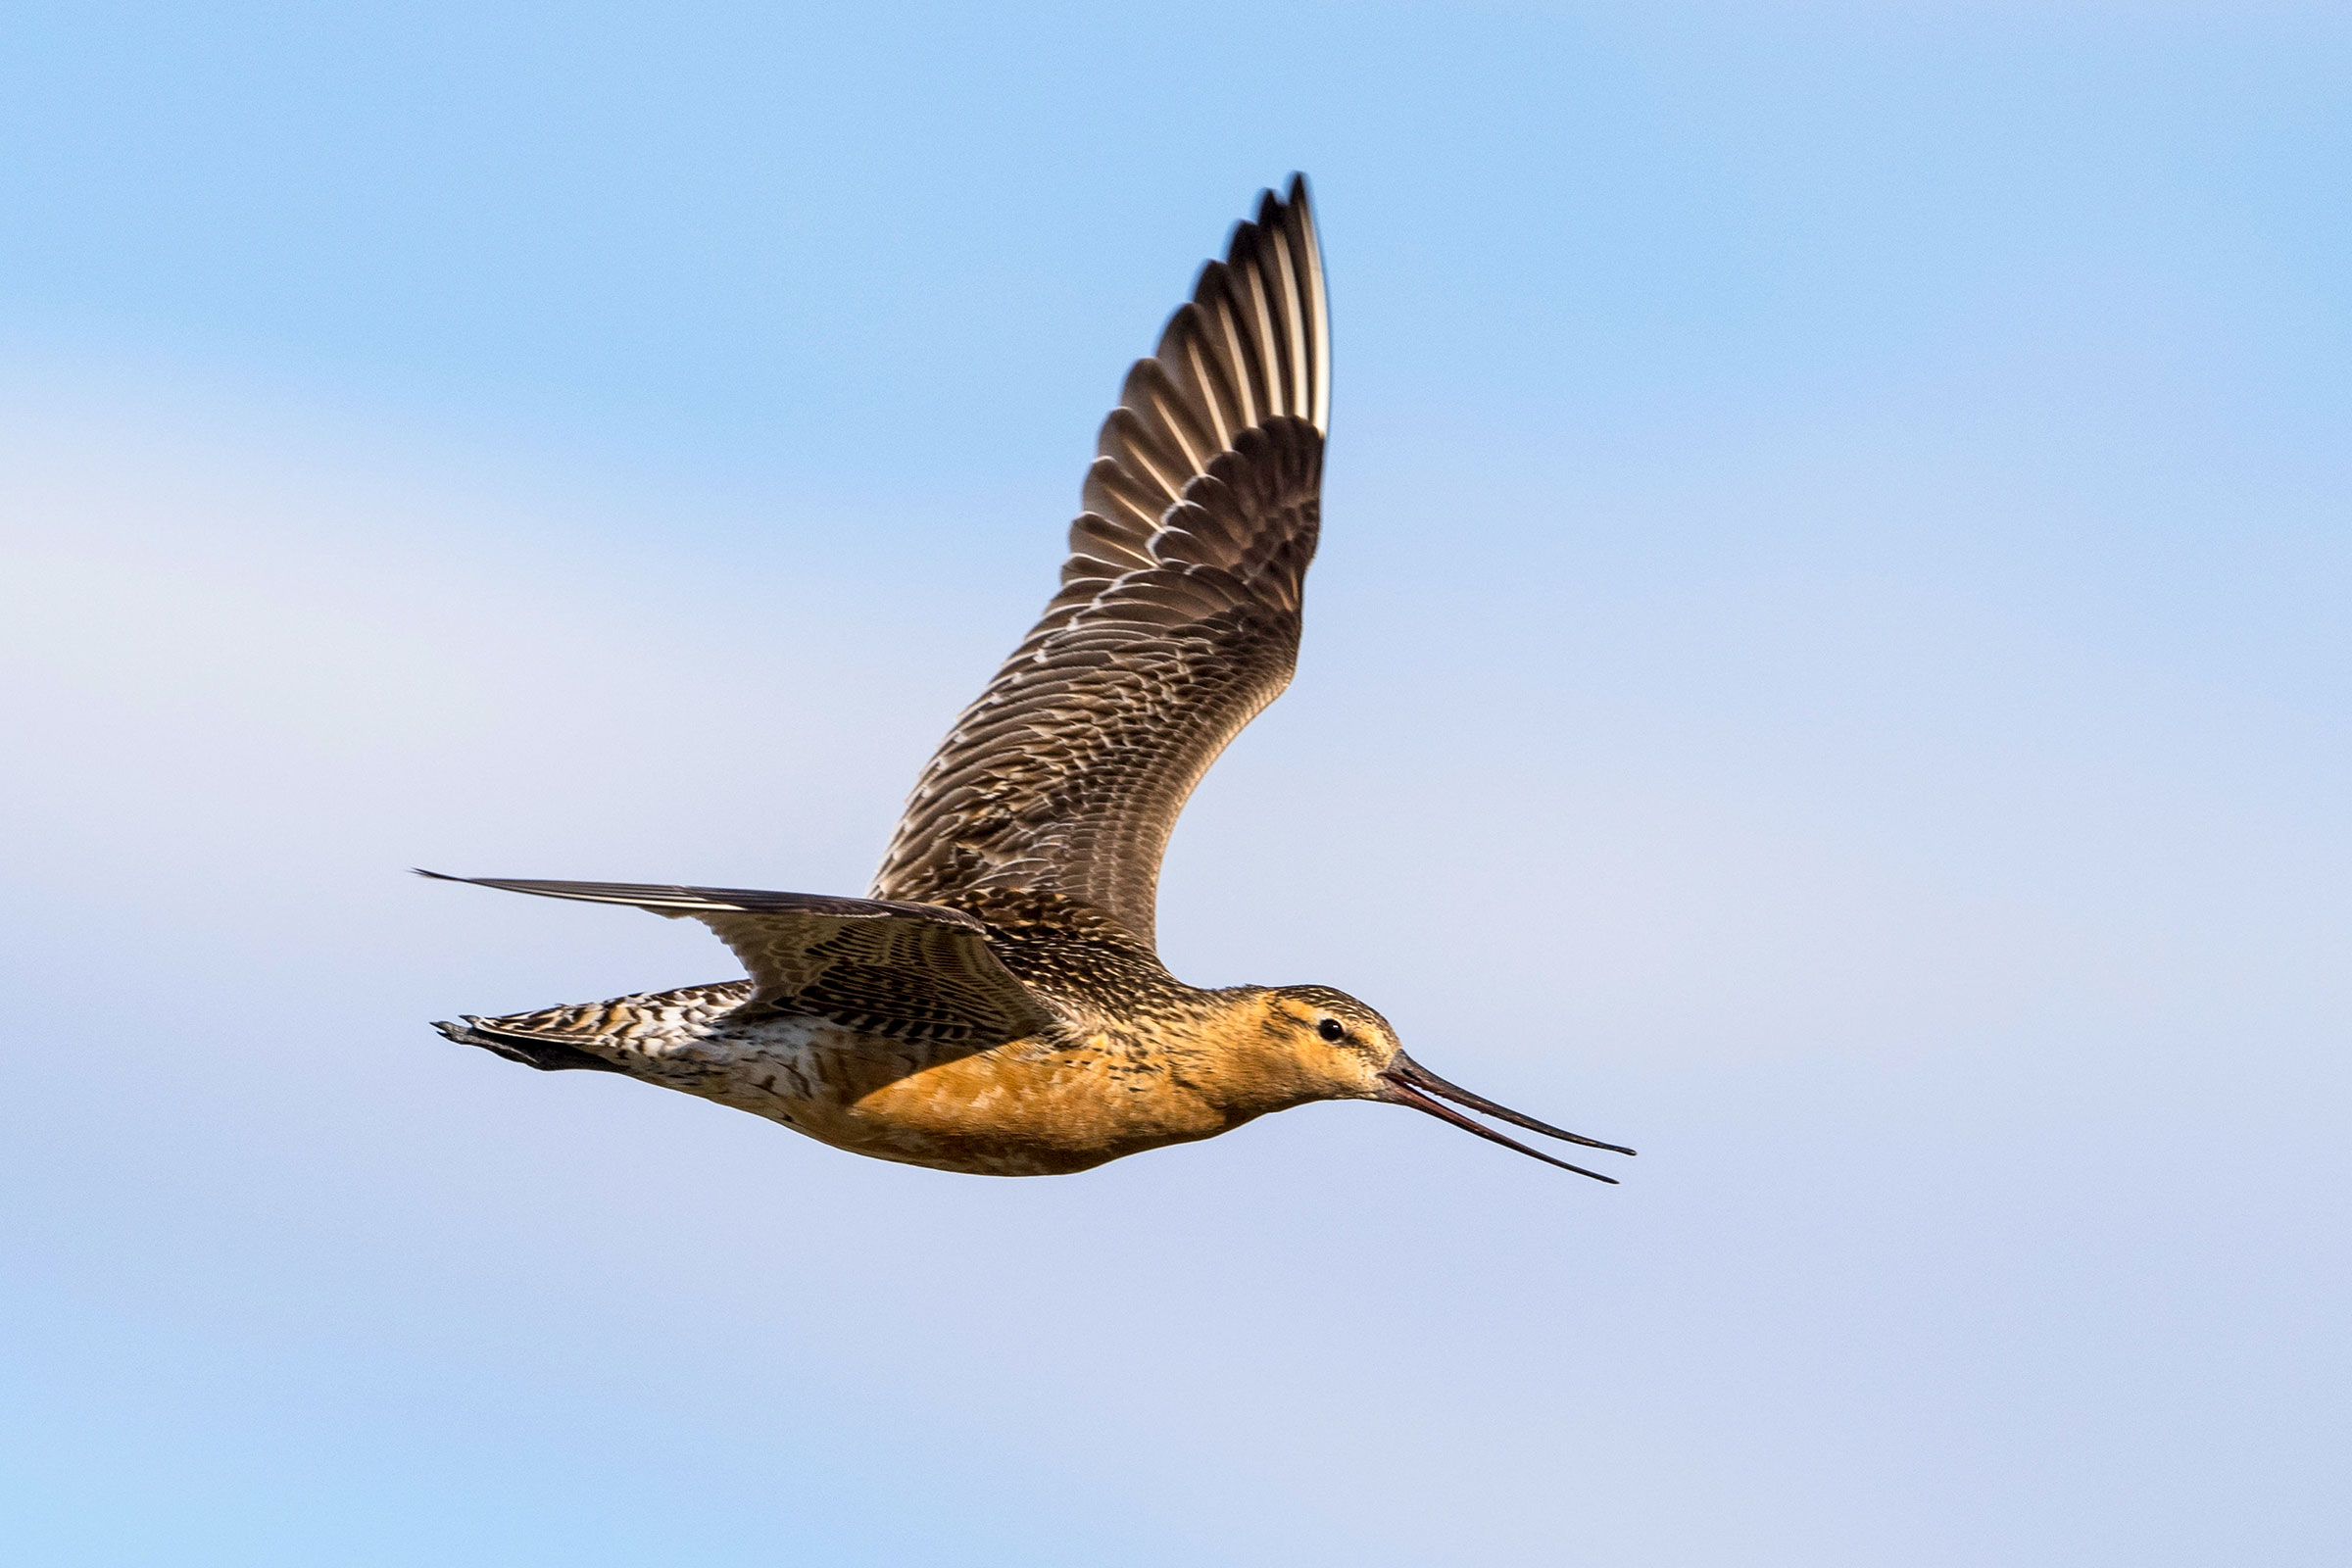 To fly 6,800 miles nonstop from Alaska to New Zealand each fall, Bar-tailed Godwits absorb parts of their digestive tract to make room for more fat to fuel their journey. Tom Ingram/Alamy